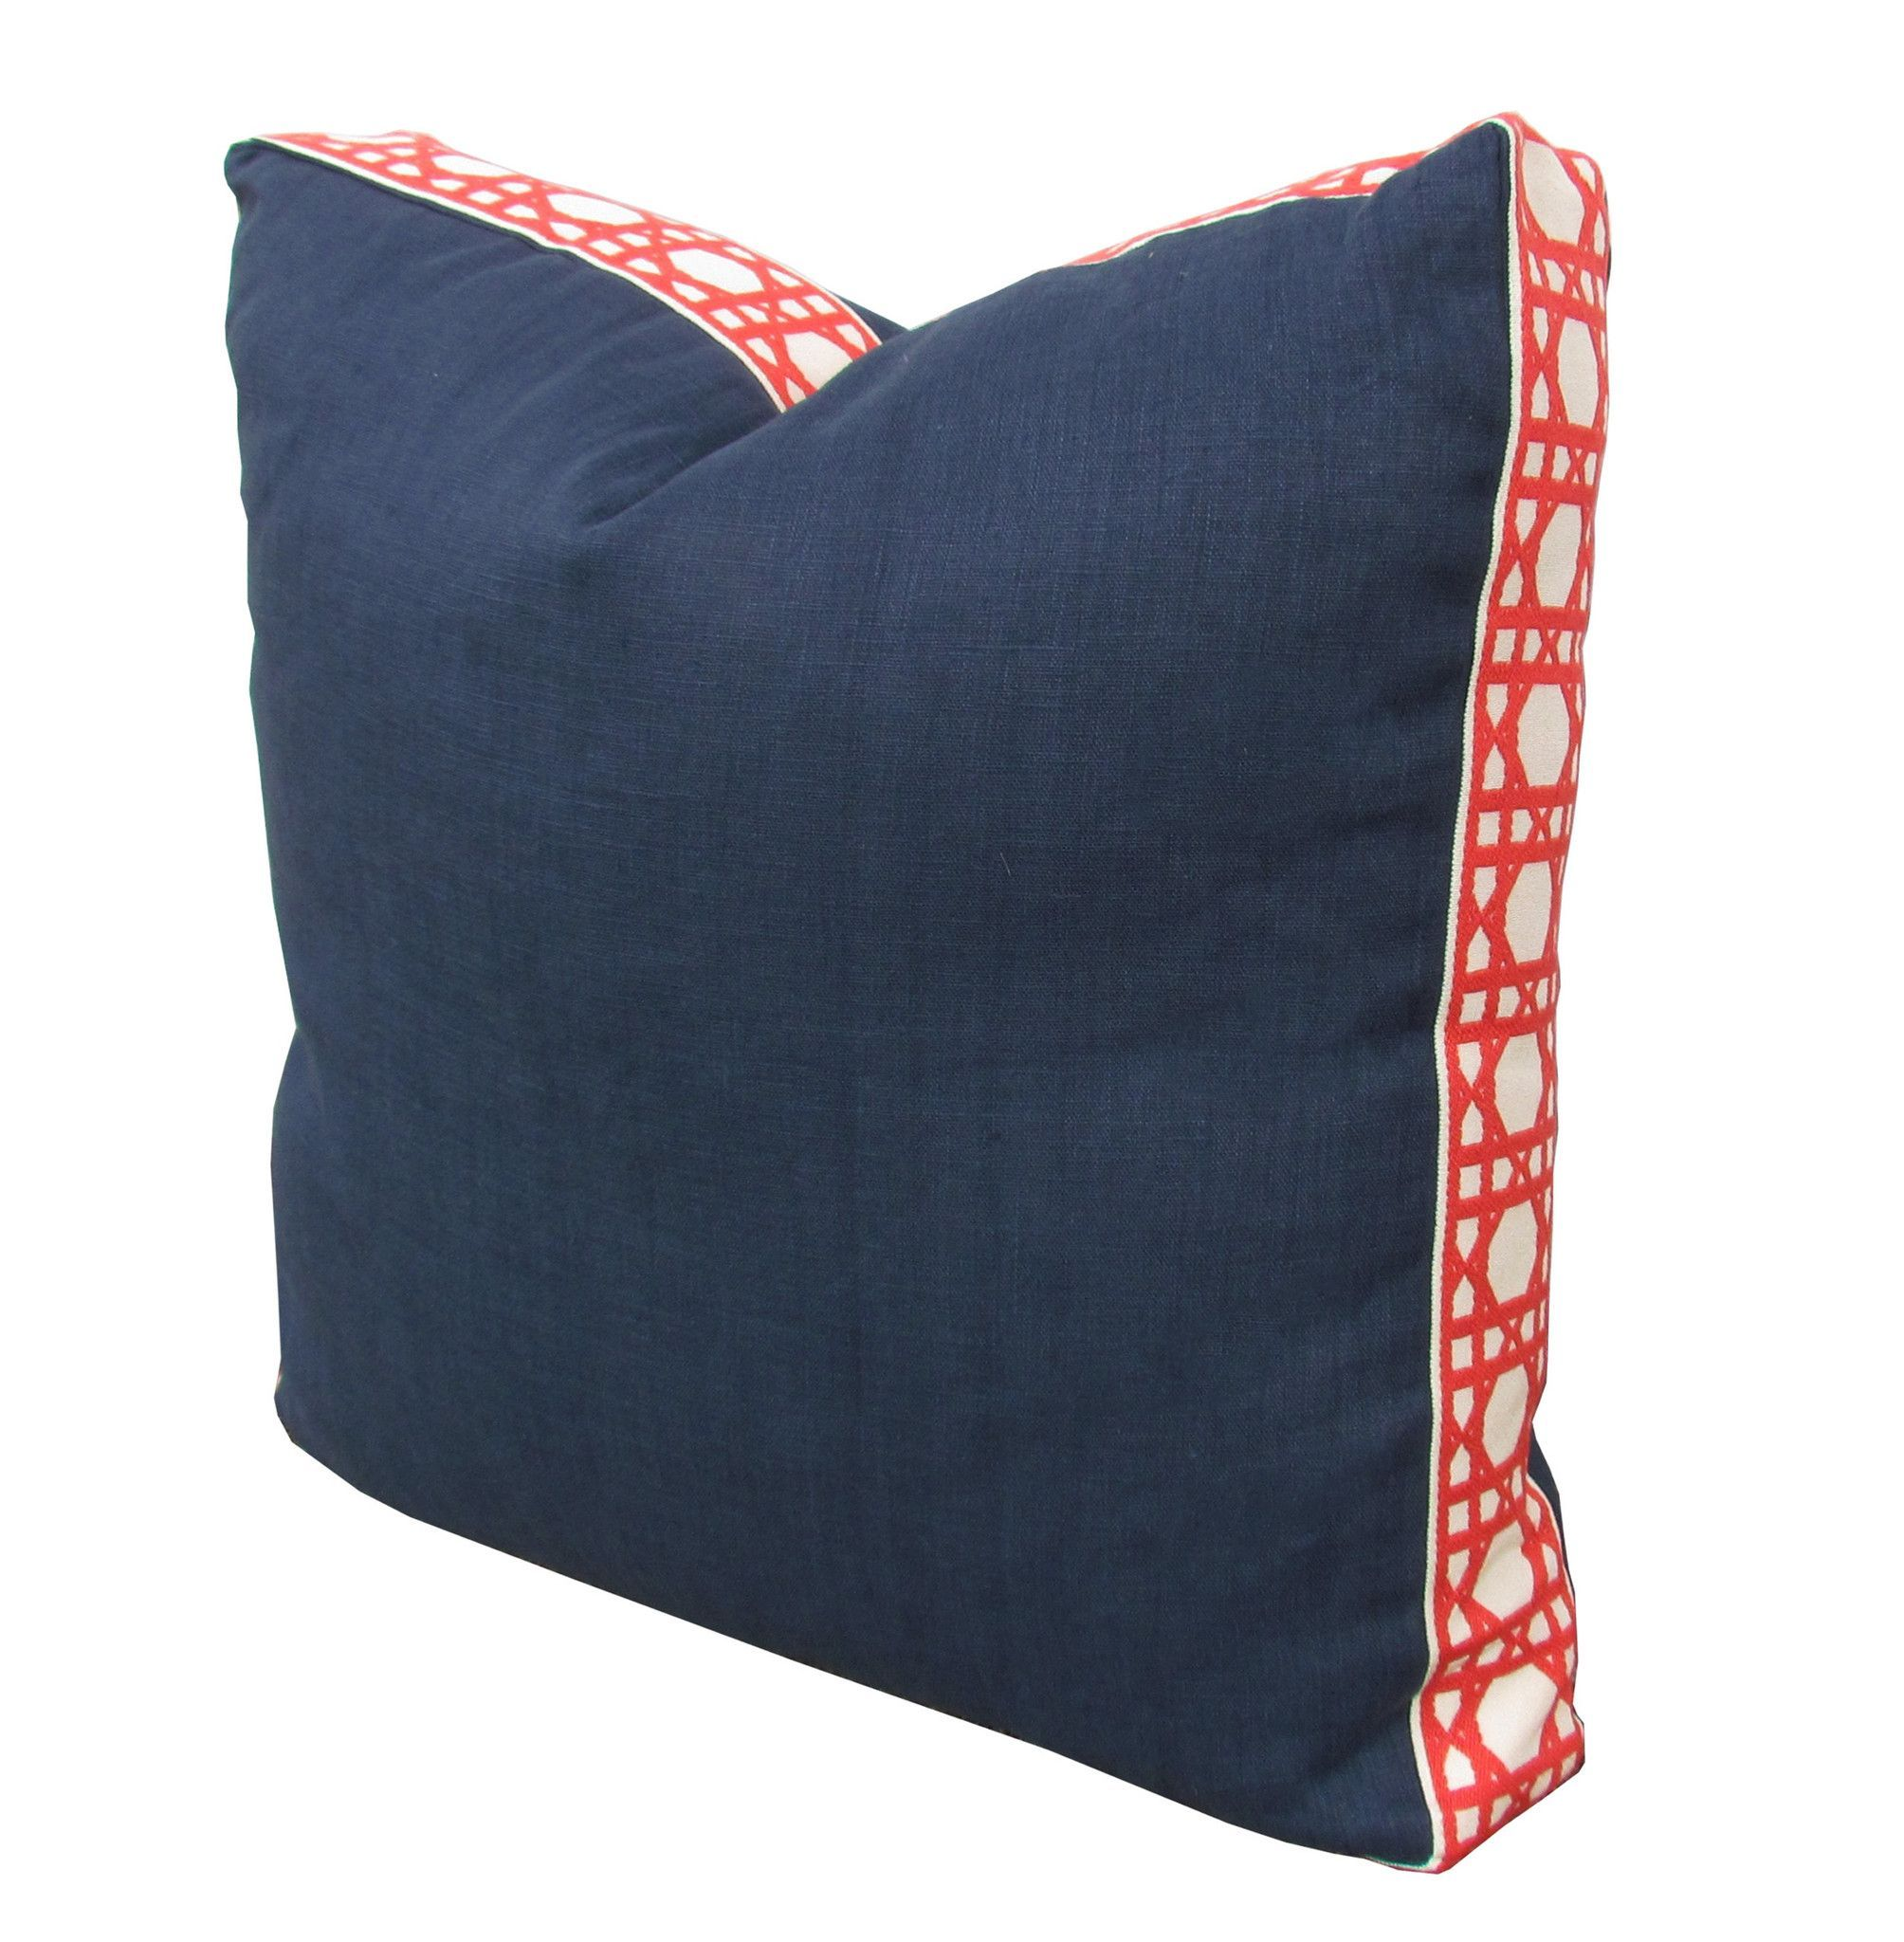 pillows coral poufs pillow in seafoam kids and navy cover product patterned medallion